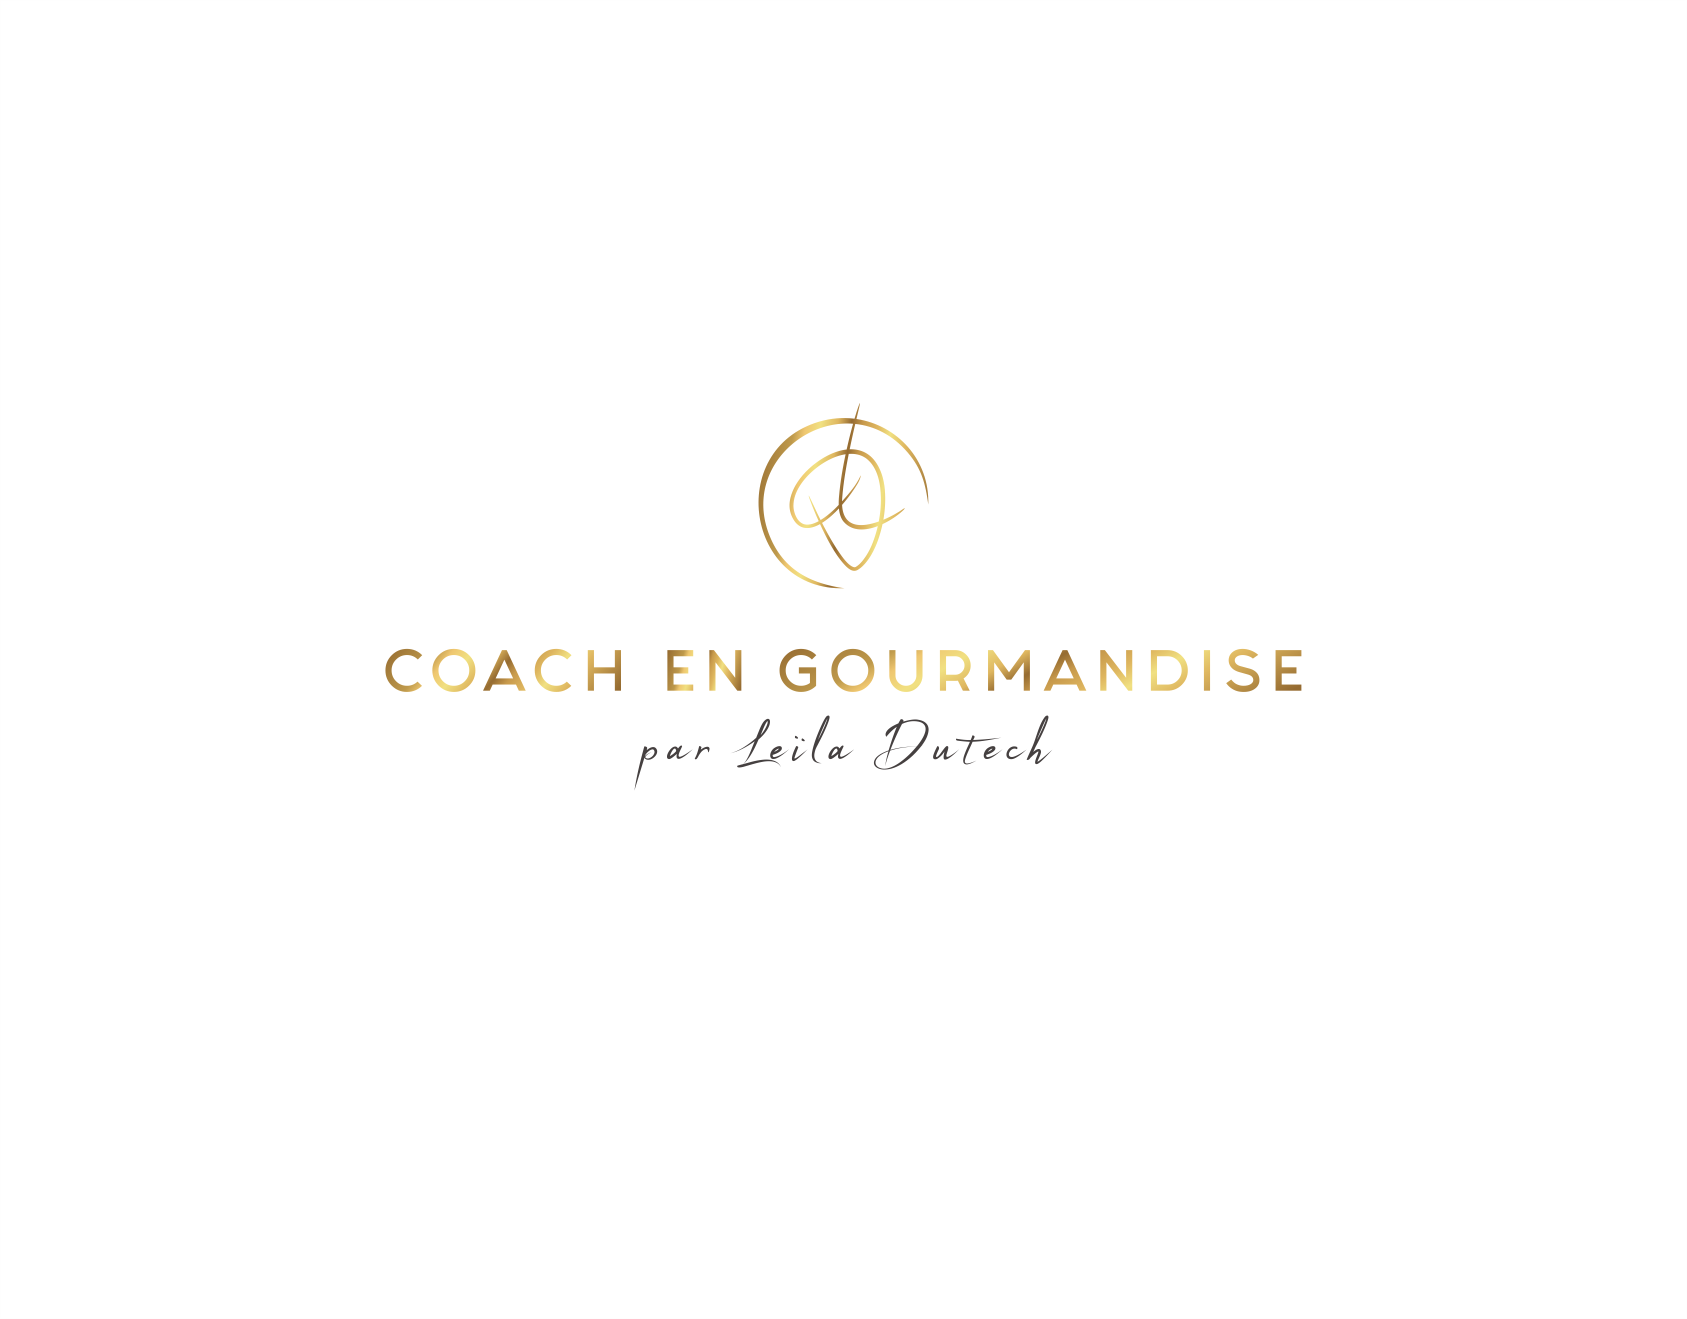 Classy and tasty logo for a friendly Gourmet coach